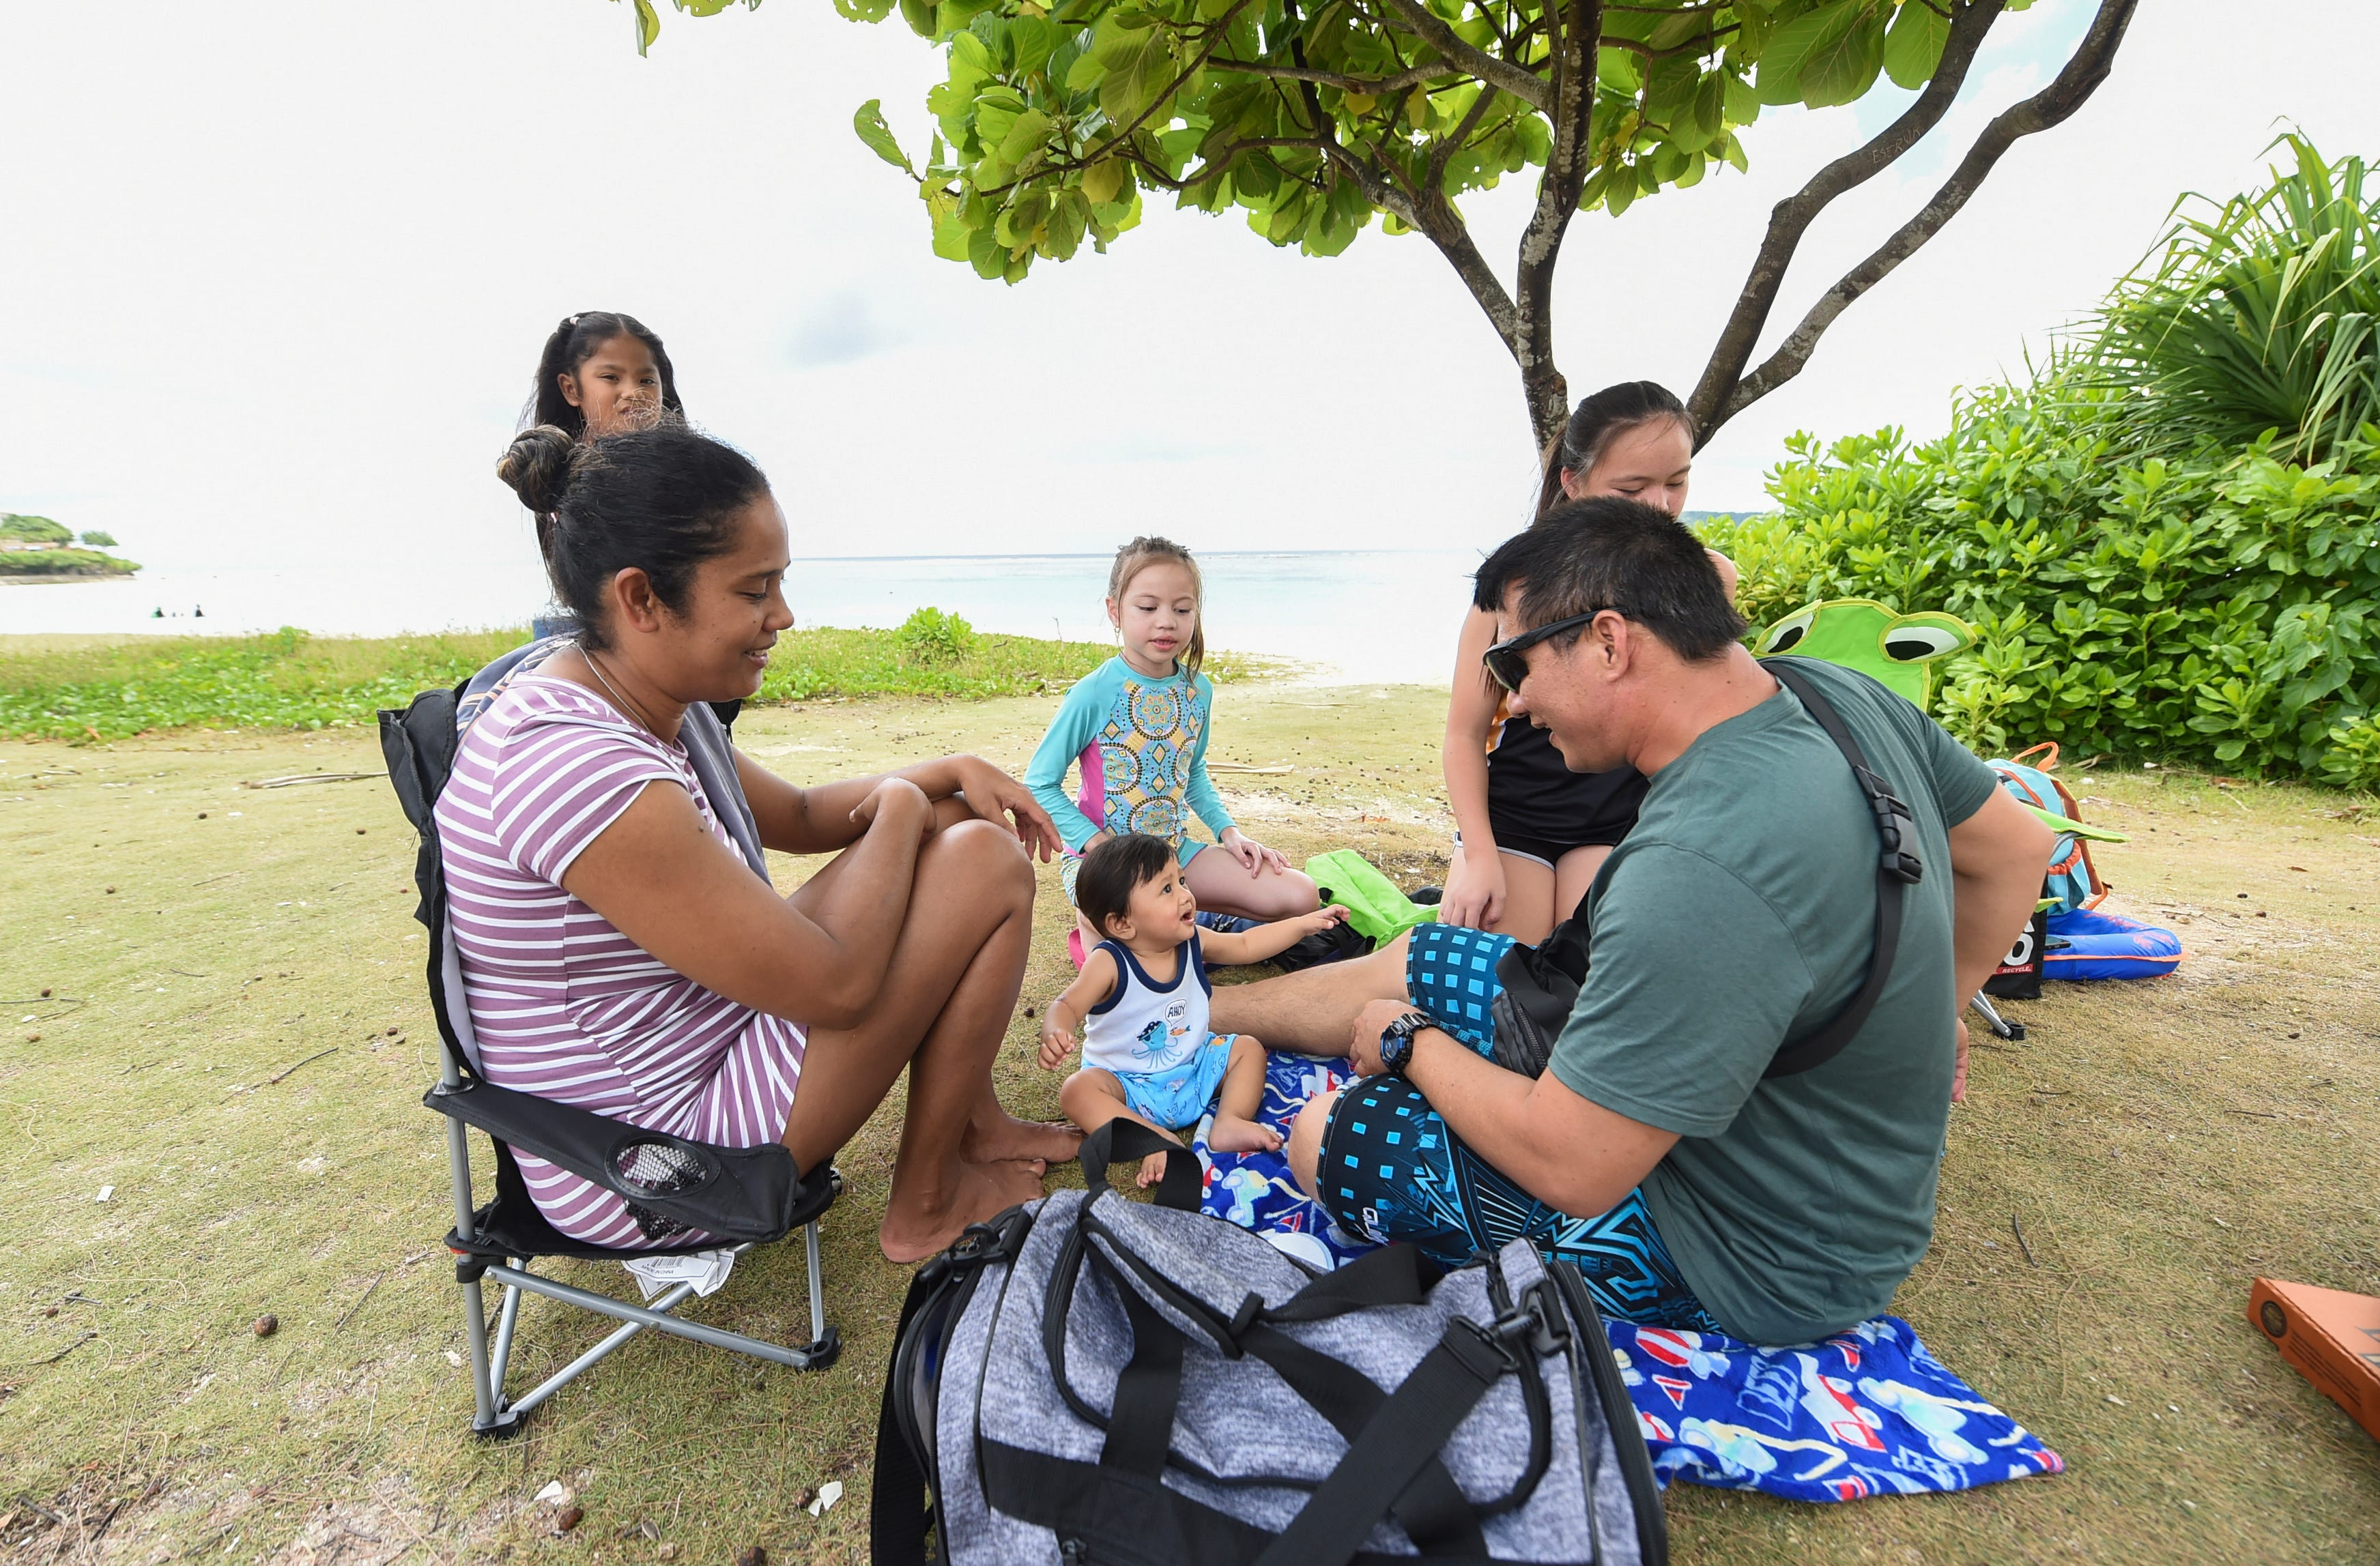 Families and friends were at the Gov. Joseph Flores Beach Park in Tumon, July 11, 2020. A maximumof 25 people are allowed to gather in one location during Pandemic Condition of Readiness 2.